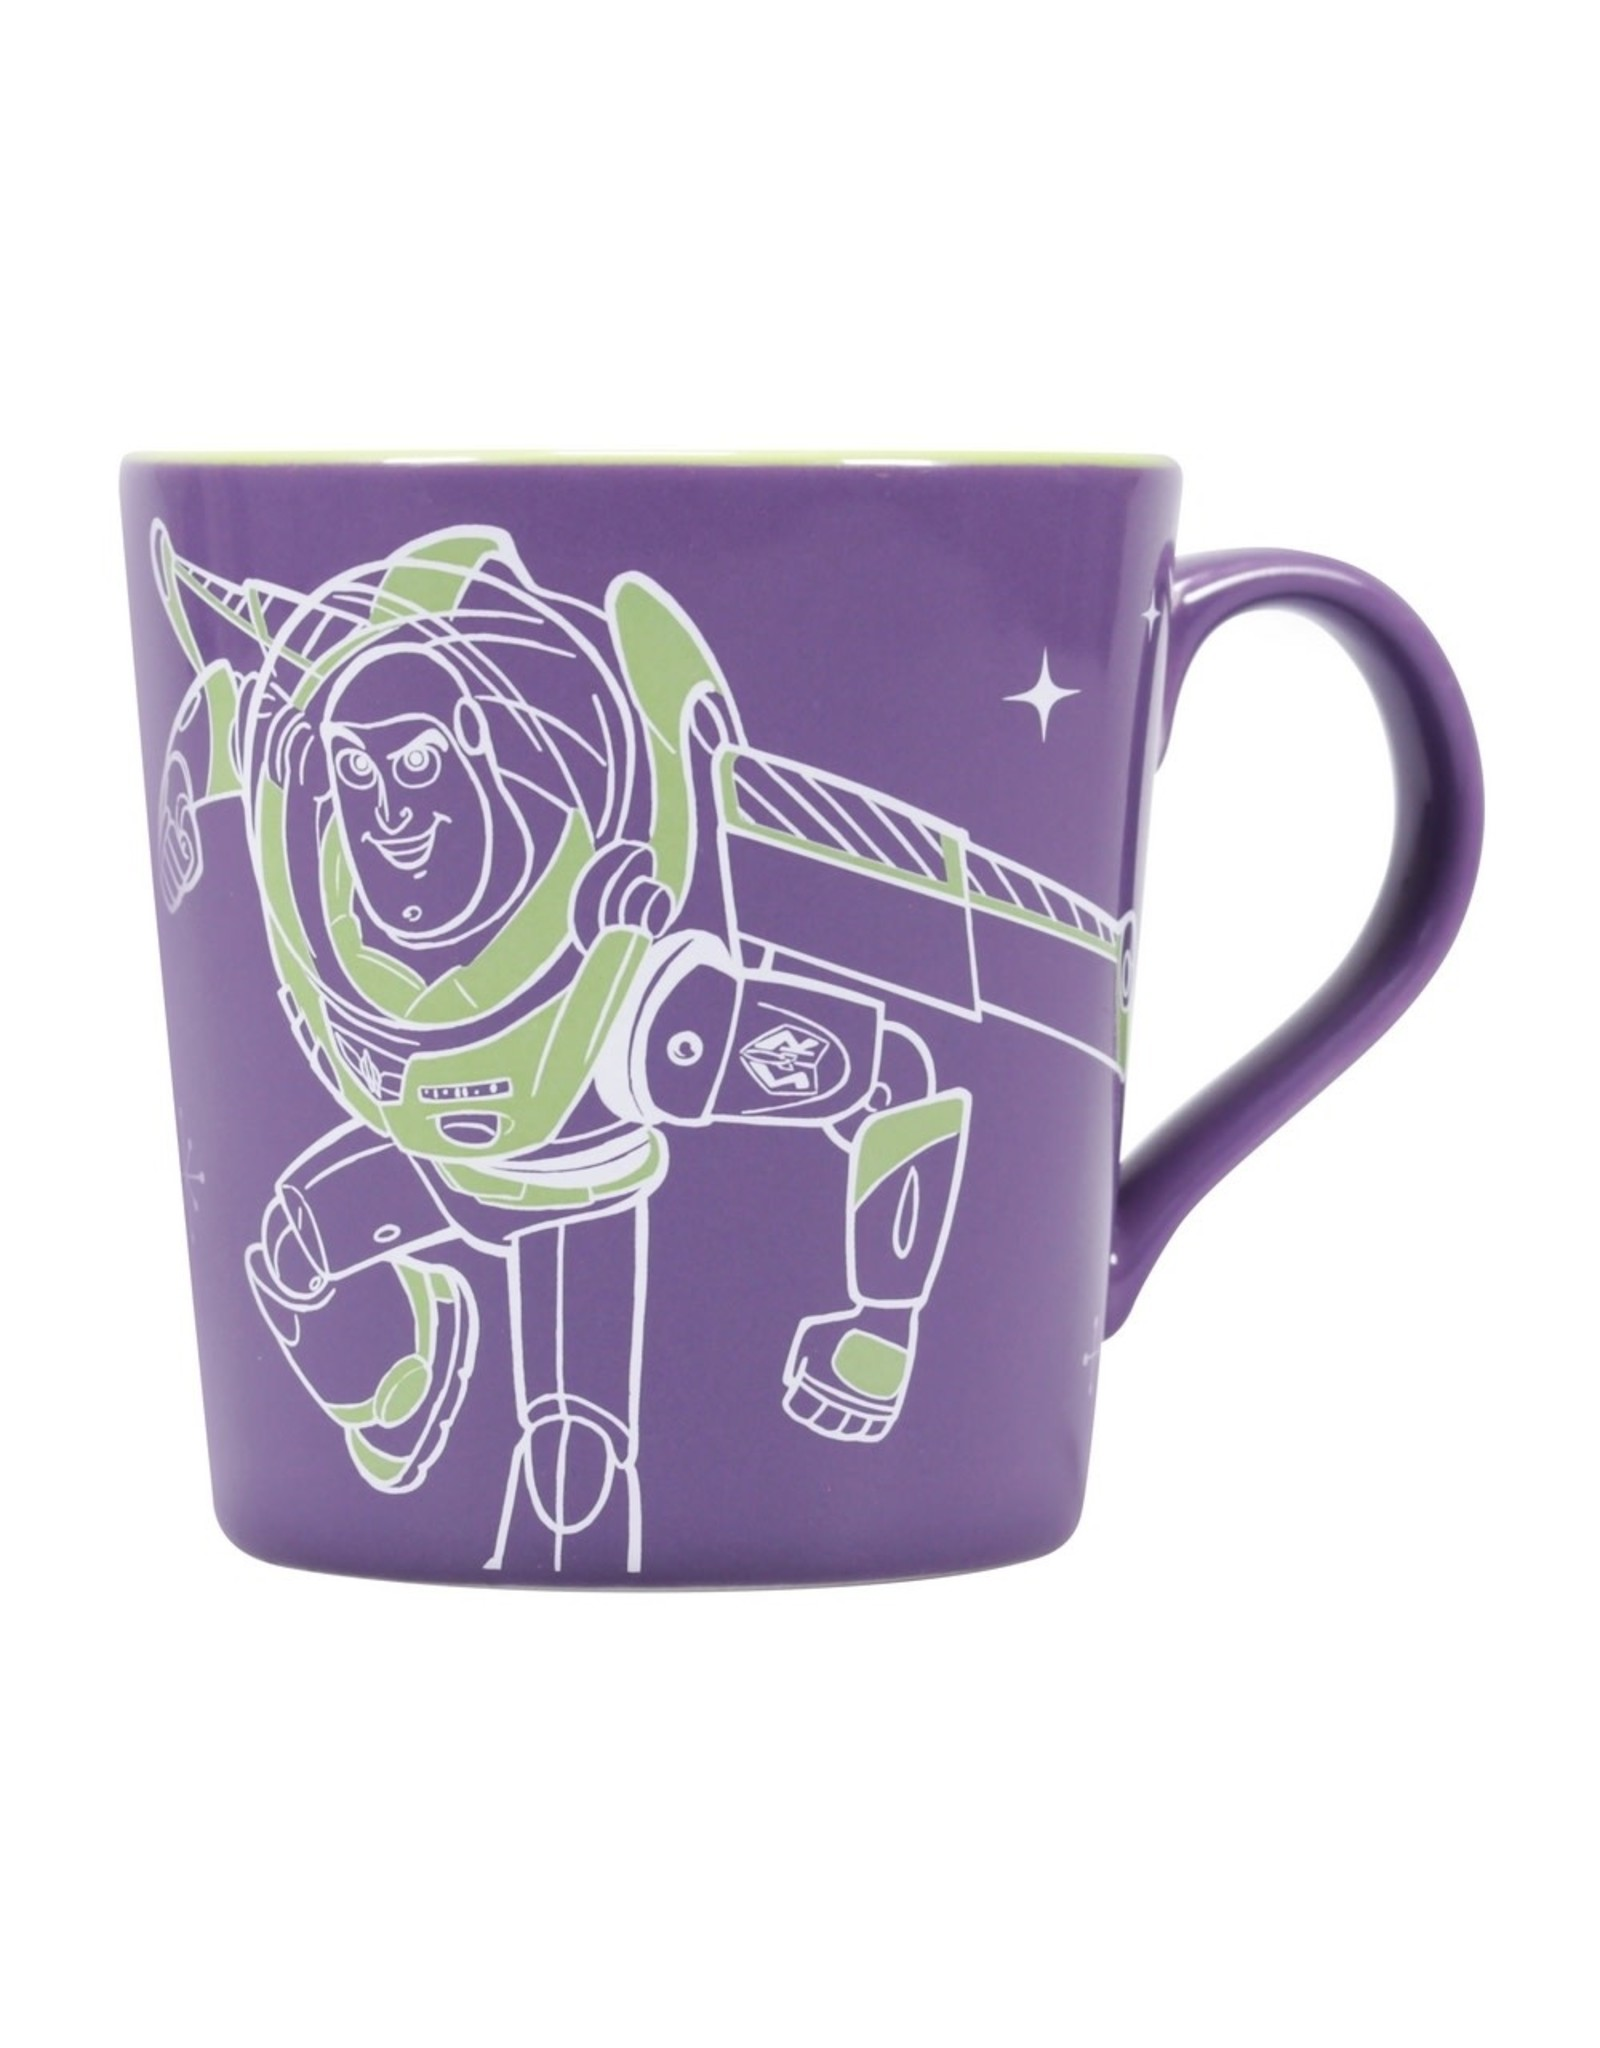 TOY STORY Mug 350ml - Buzz Lightyear